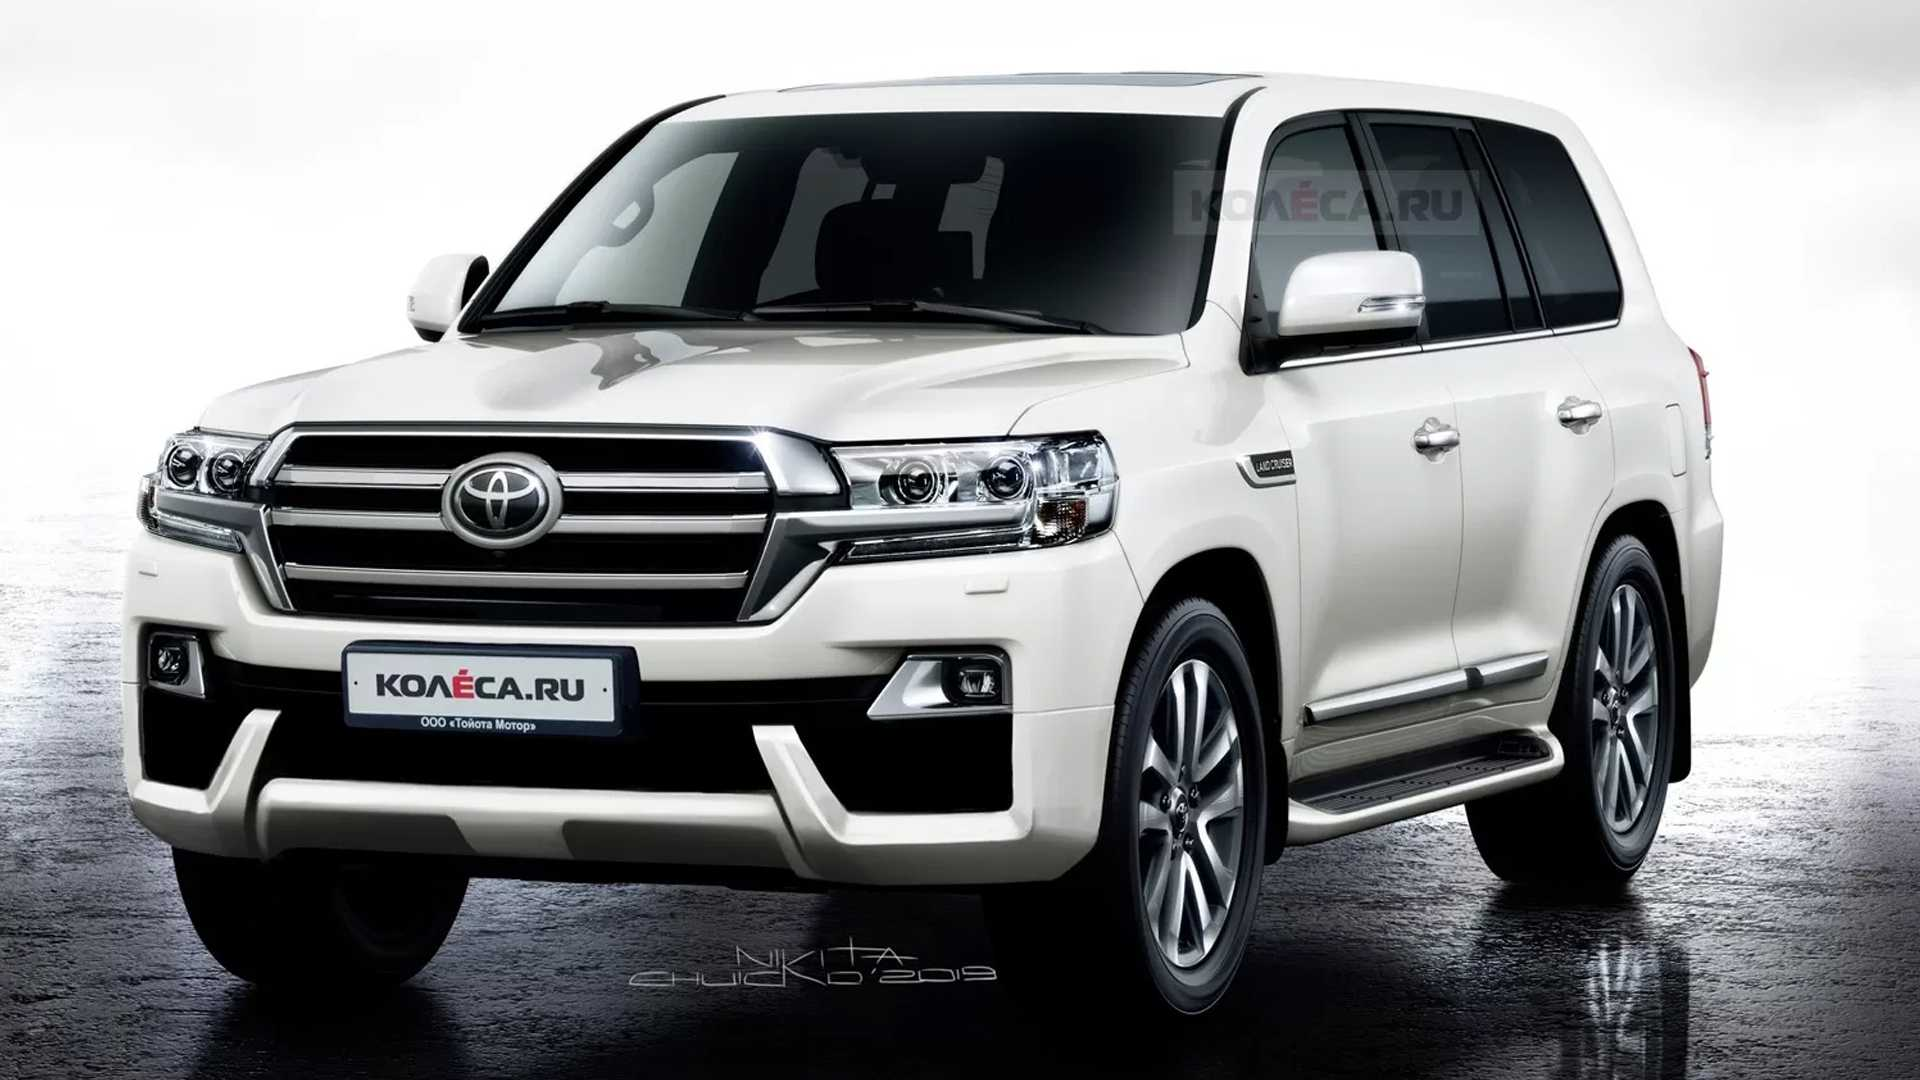 Toyota Land Cruiser Rendering Shows A Minor Facelift For The Big SUV